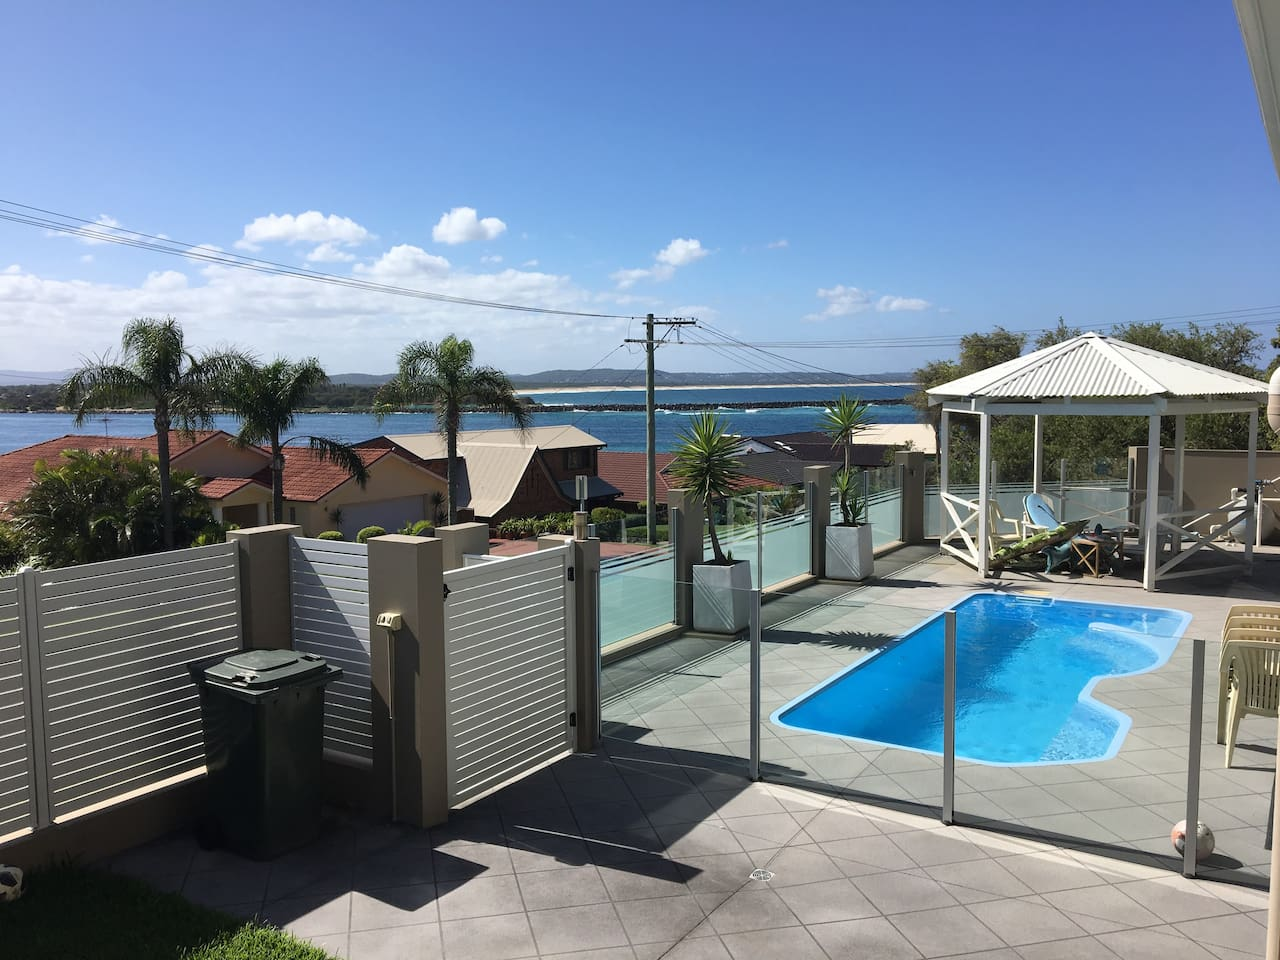 View from deck, use of pool allowed sunscreen provided